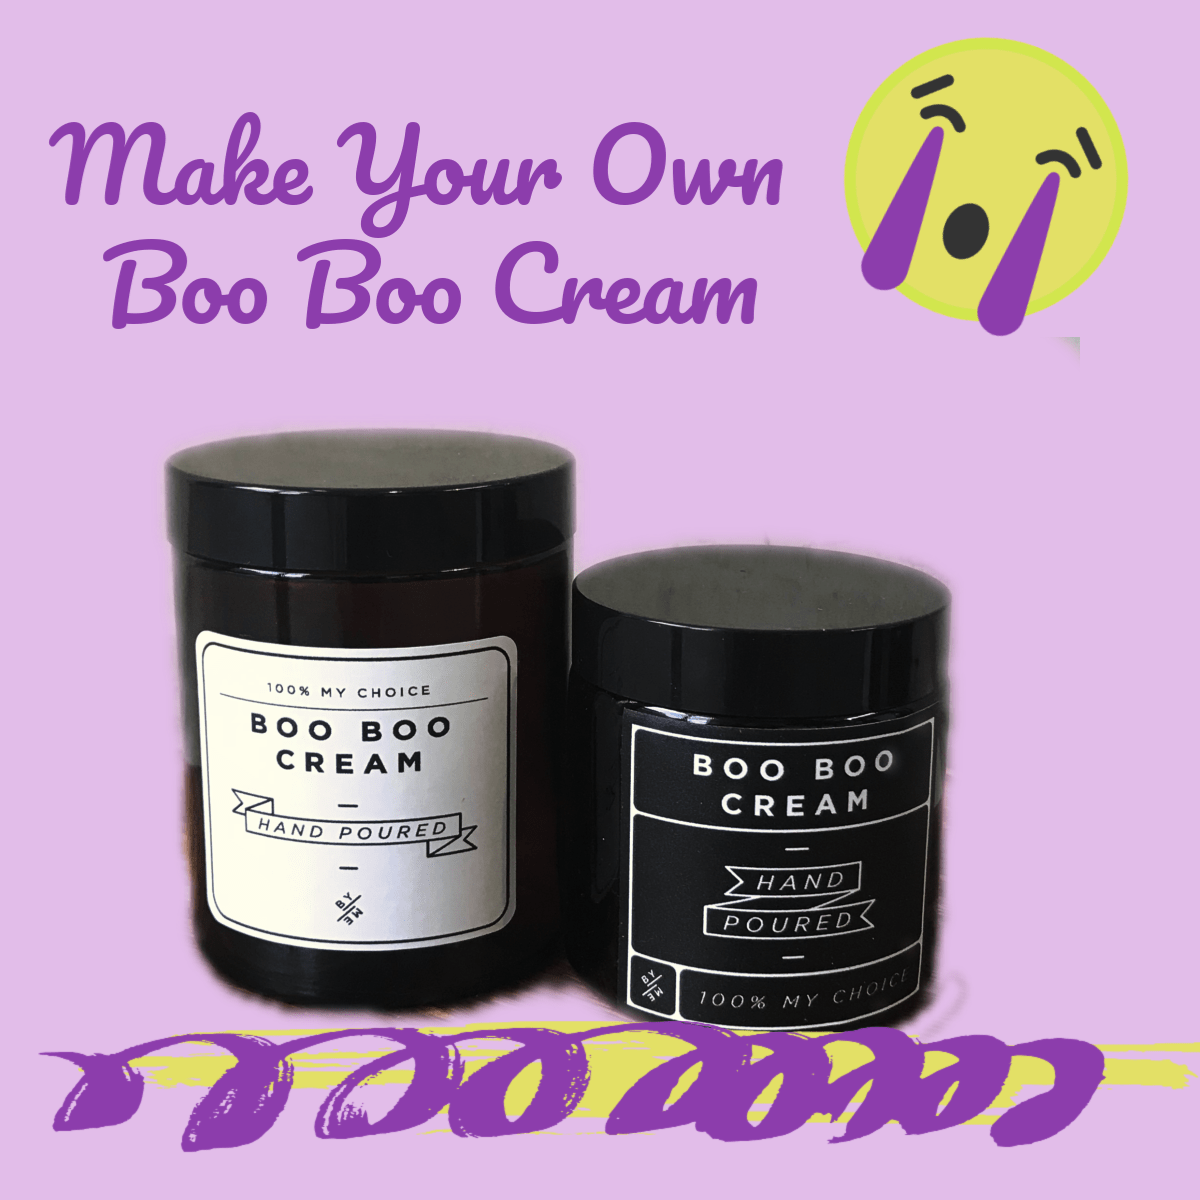 How to make your own Boo Boo Cream